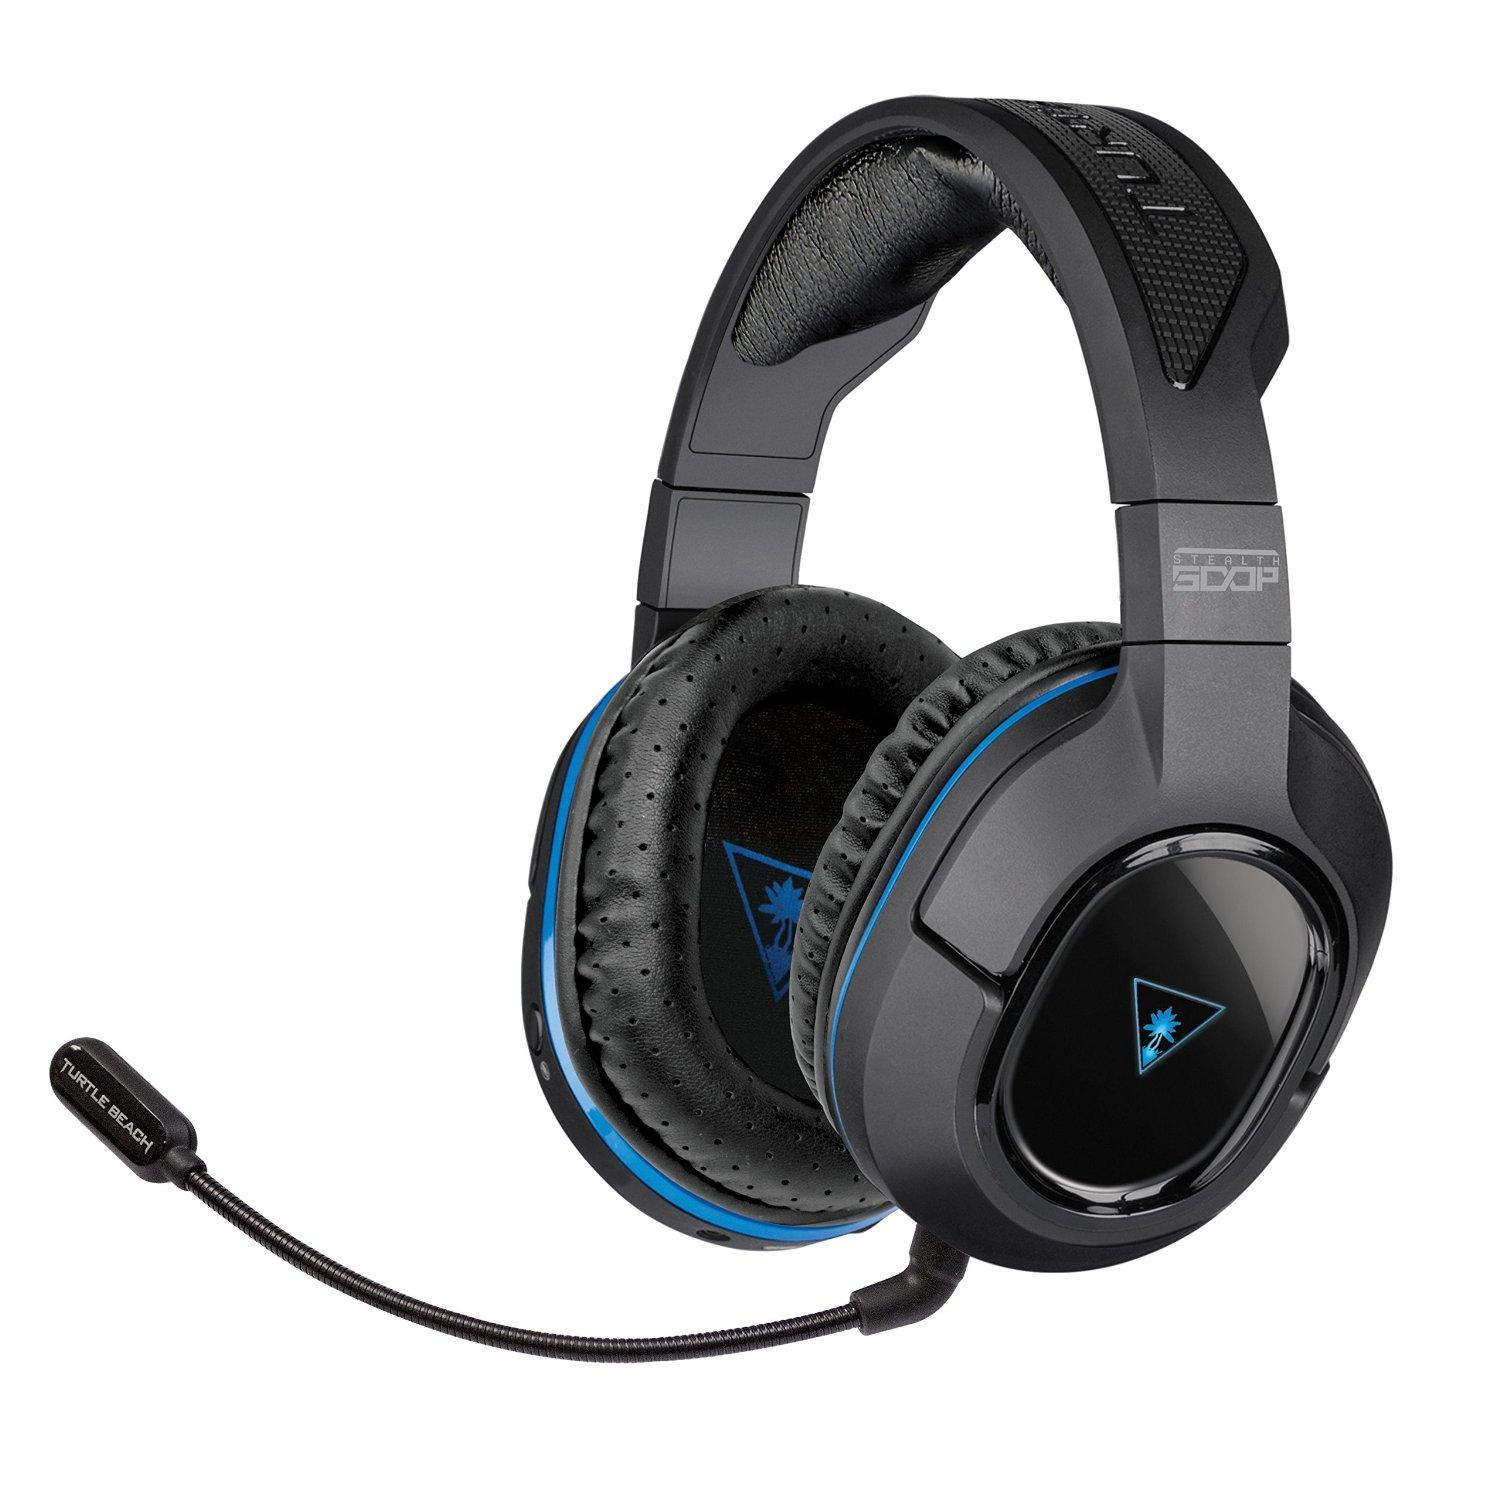 P Turtle Beach Amazon.com: Turtle Bea...